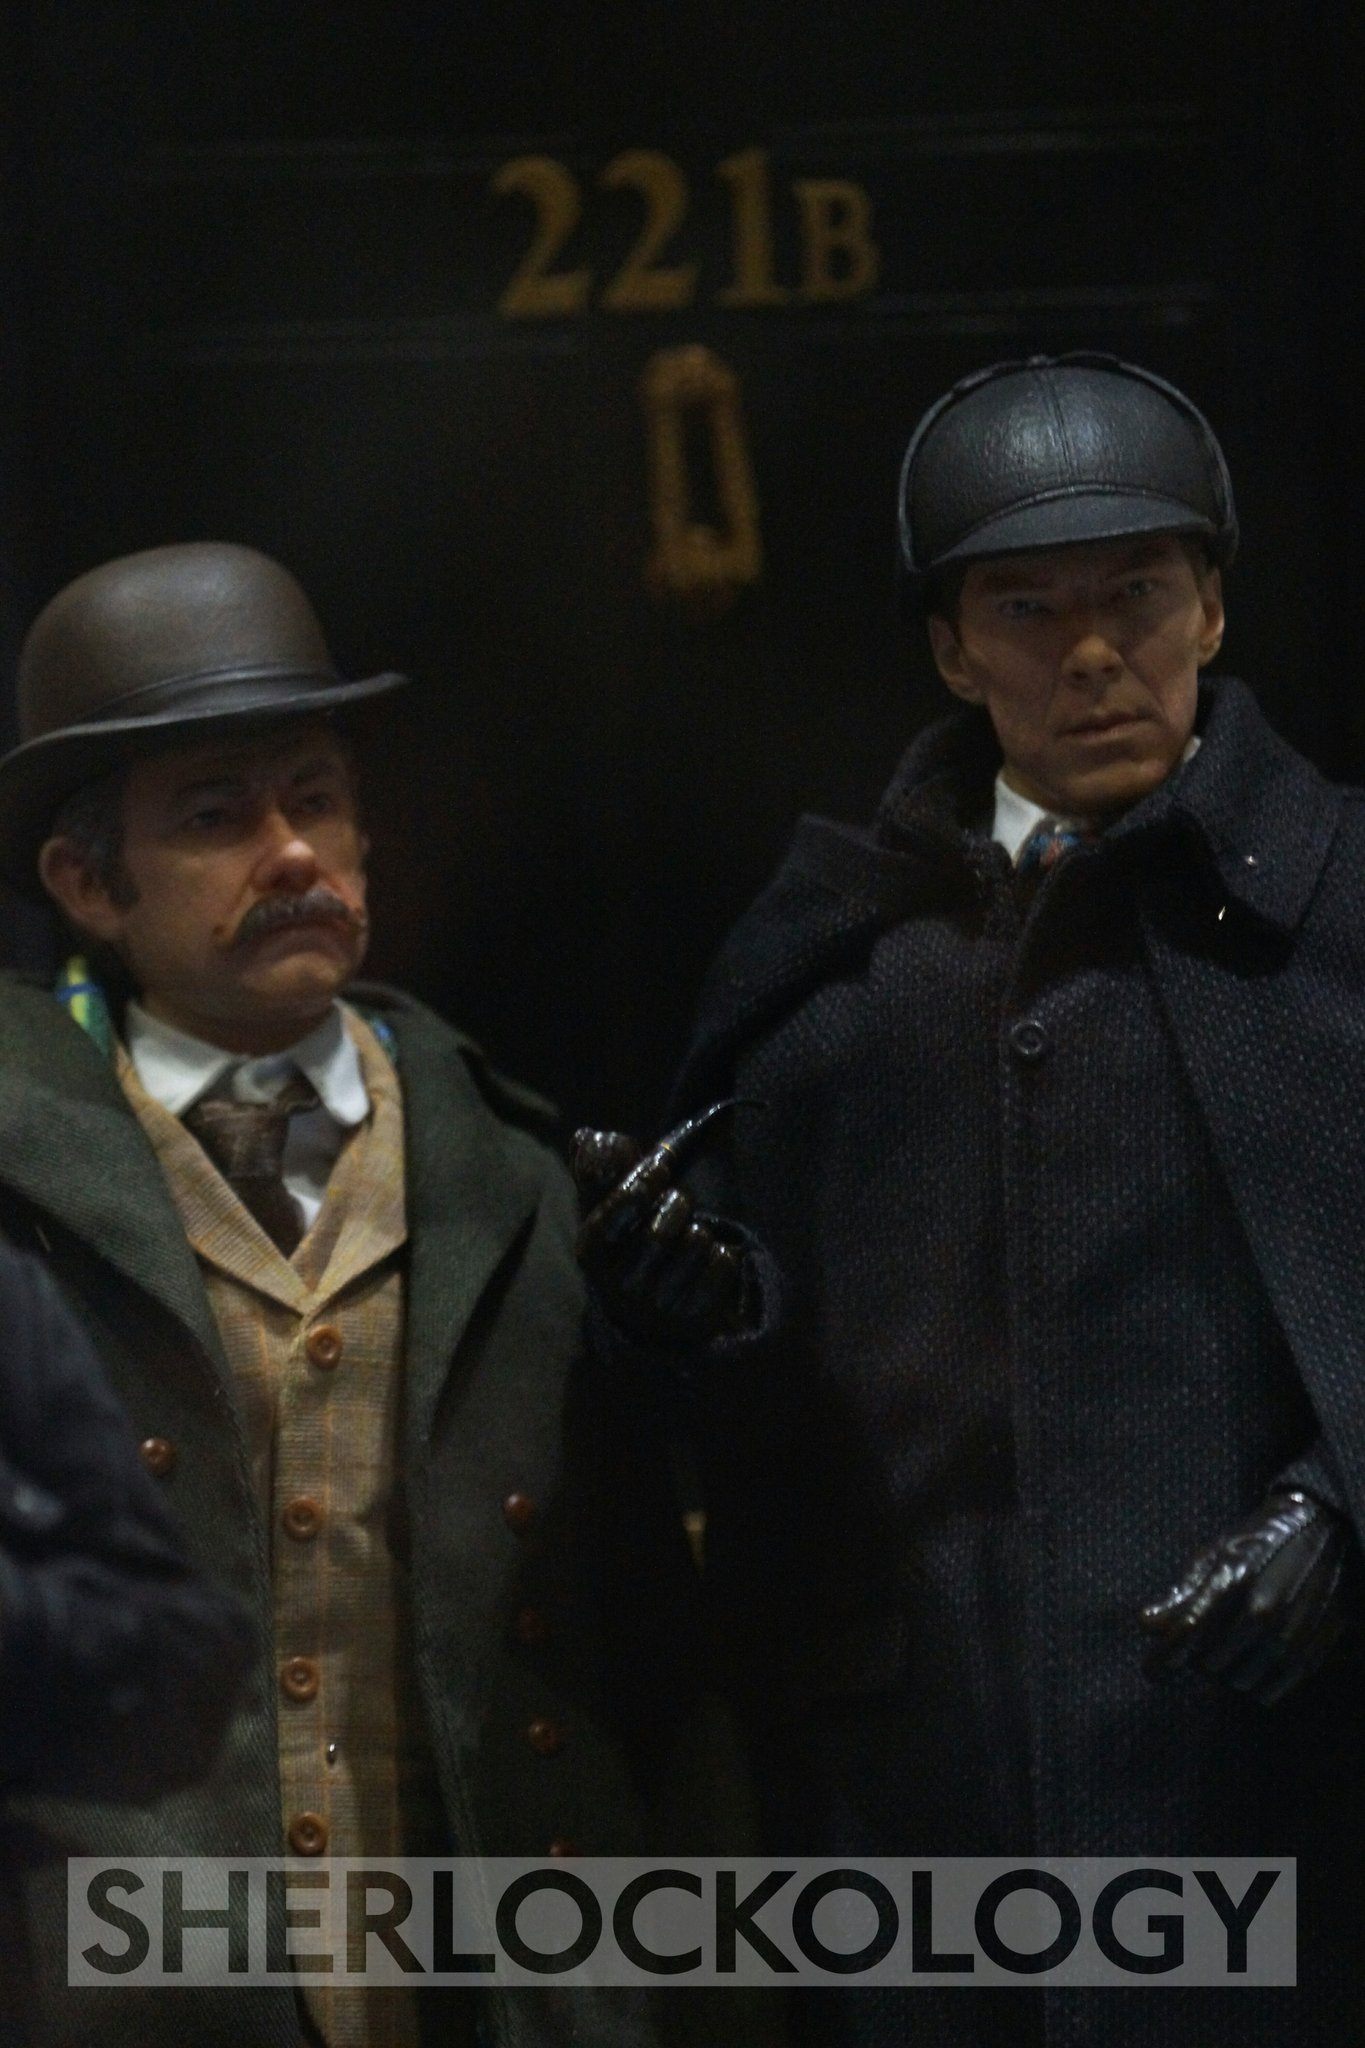 First 'in the flesh' appearance for @BigChiefStudio1's 1:6 figures of Holmes and Watson at #SherlockedUK! https://t.co/xYMhpRN3lL